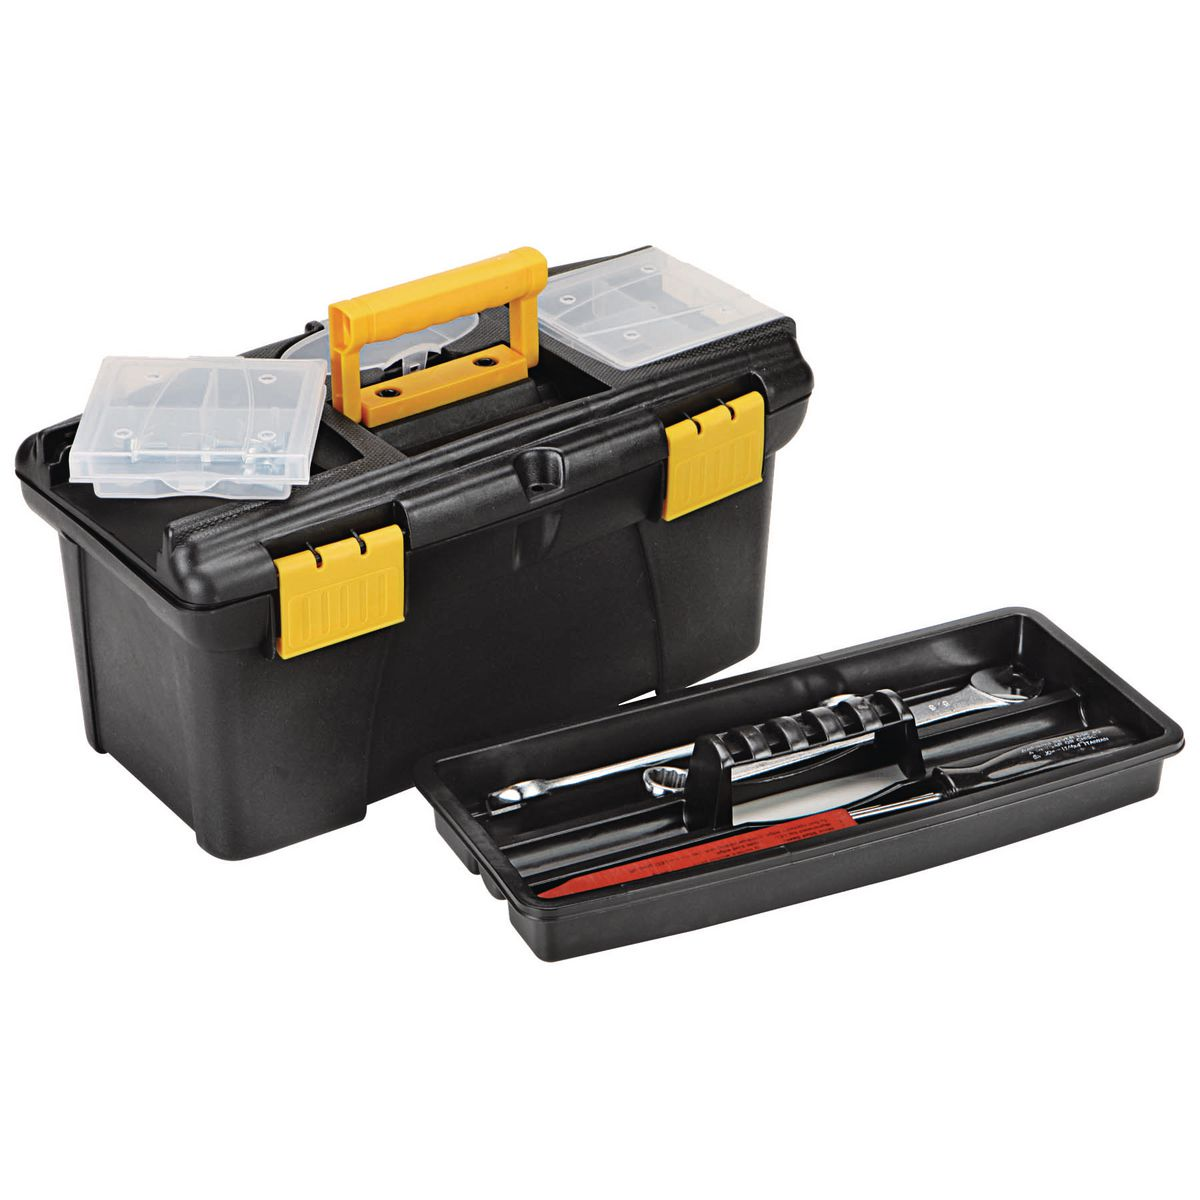 12 in toolbox with top tray